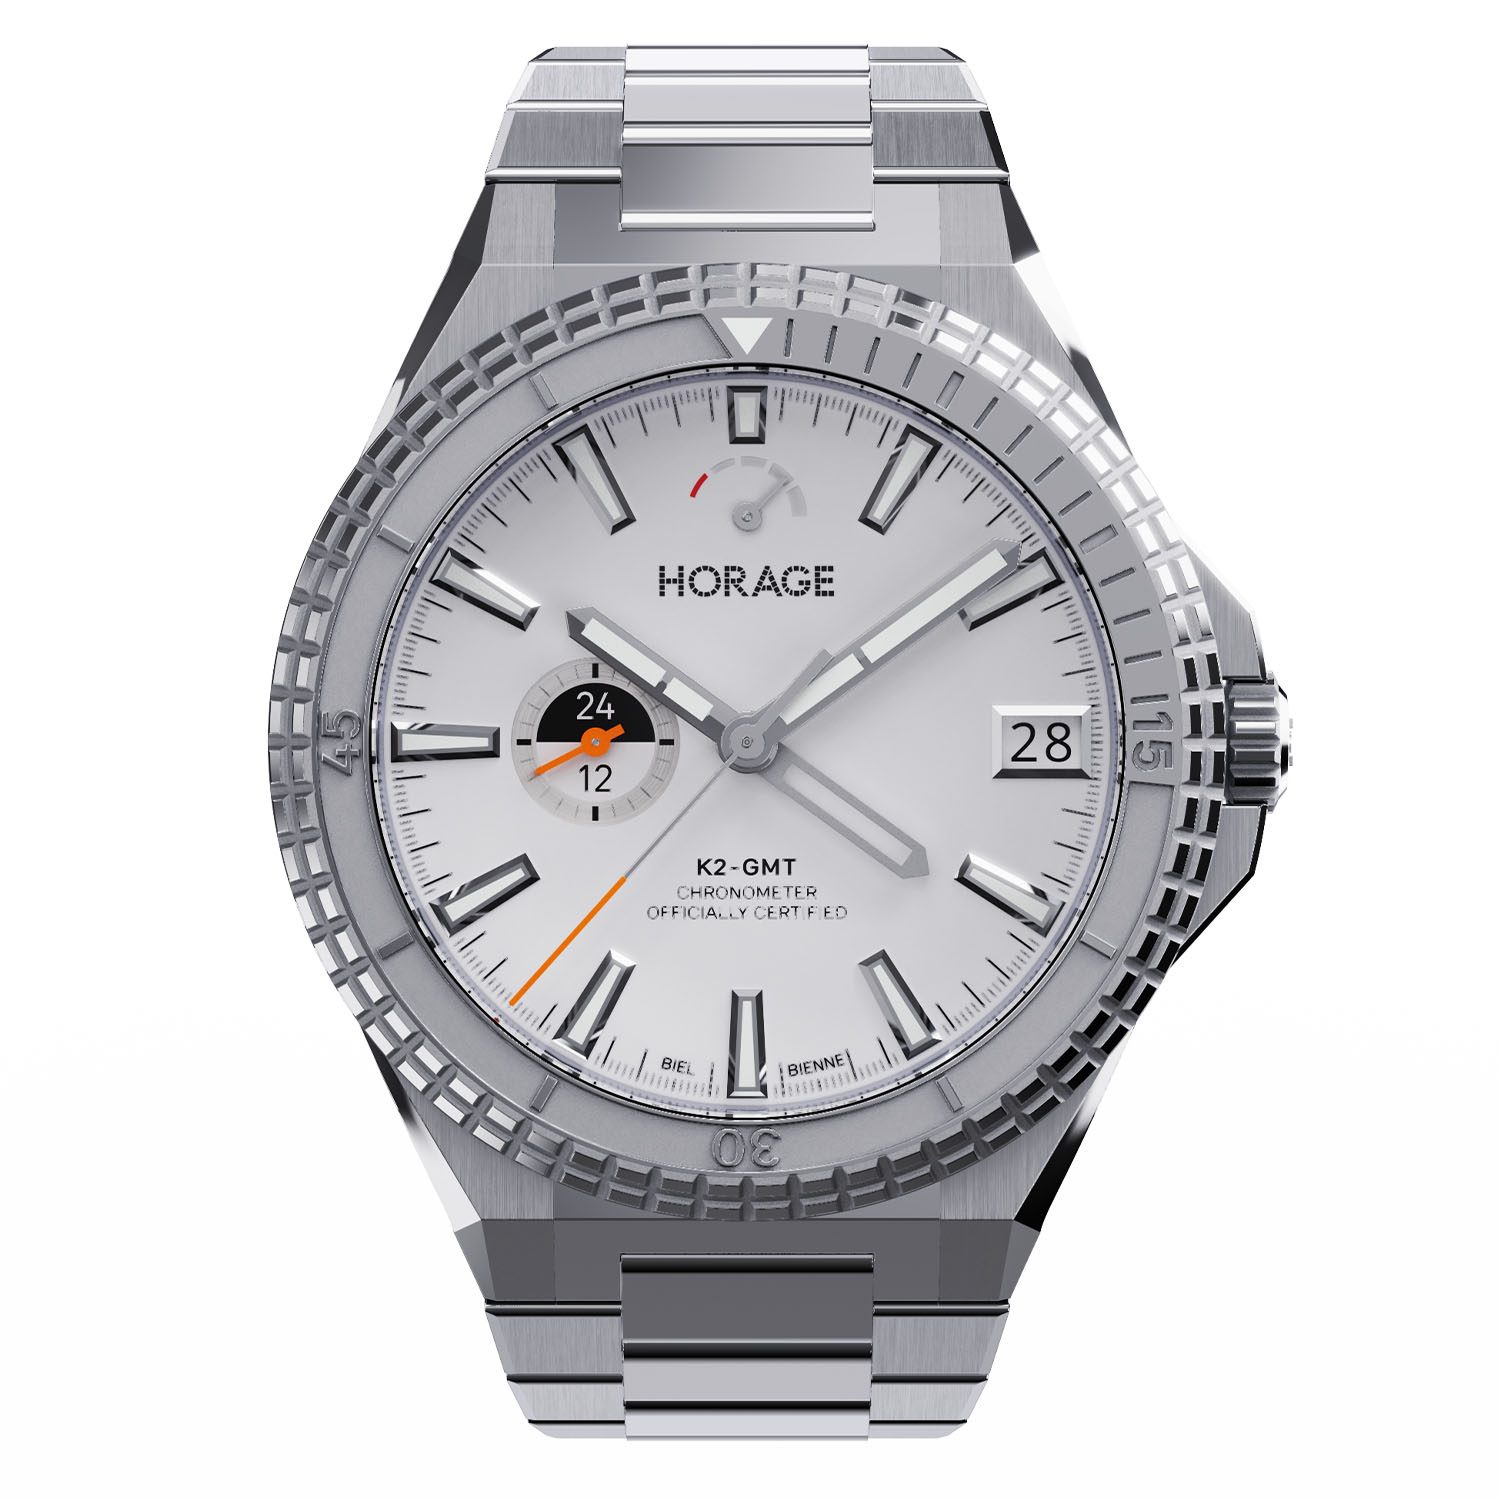 Horage Supersede GMT Sports Watch, With In-House Micro-Rotor Calibre